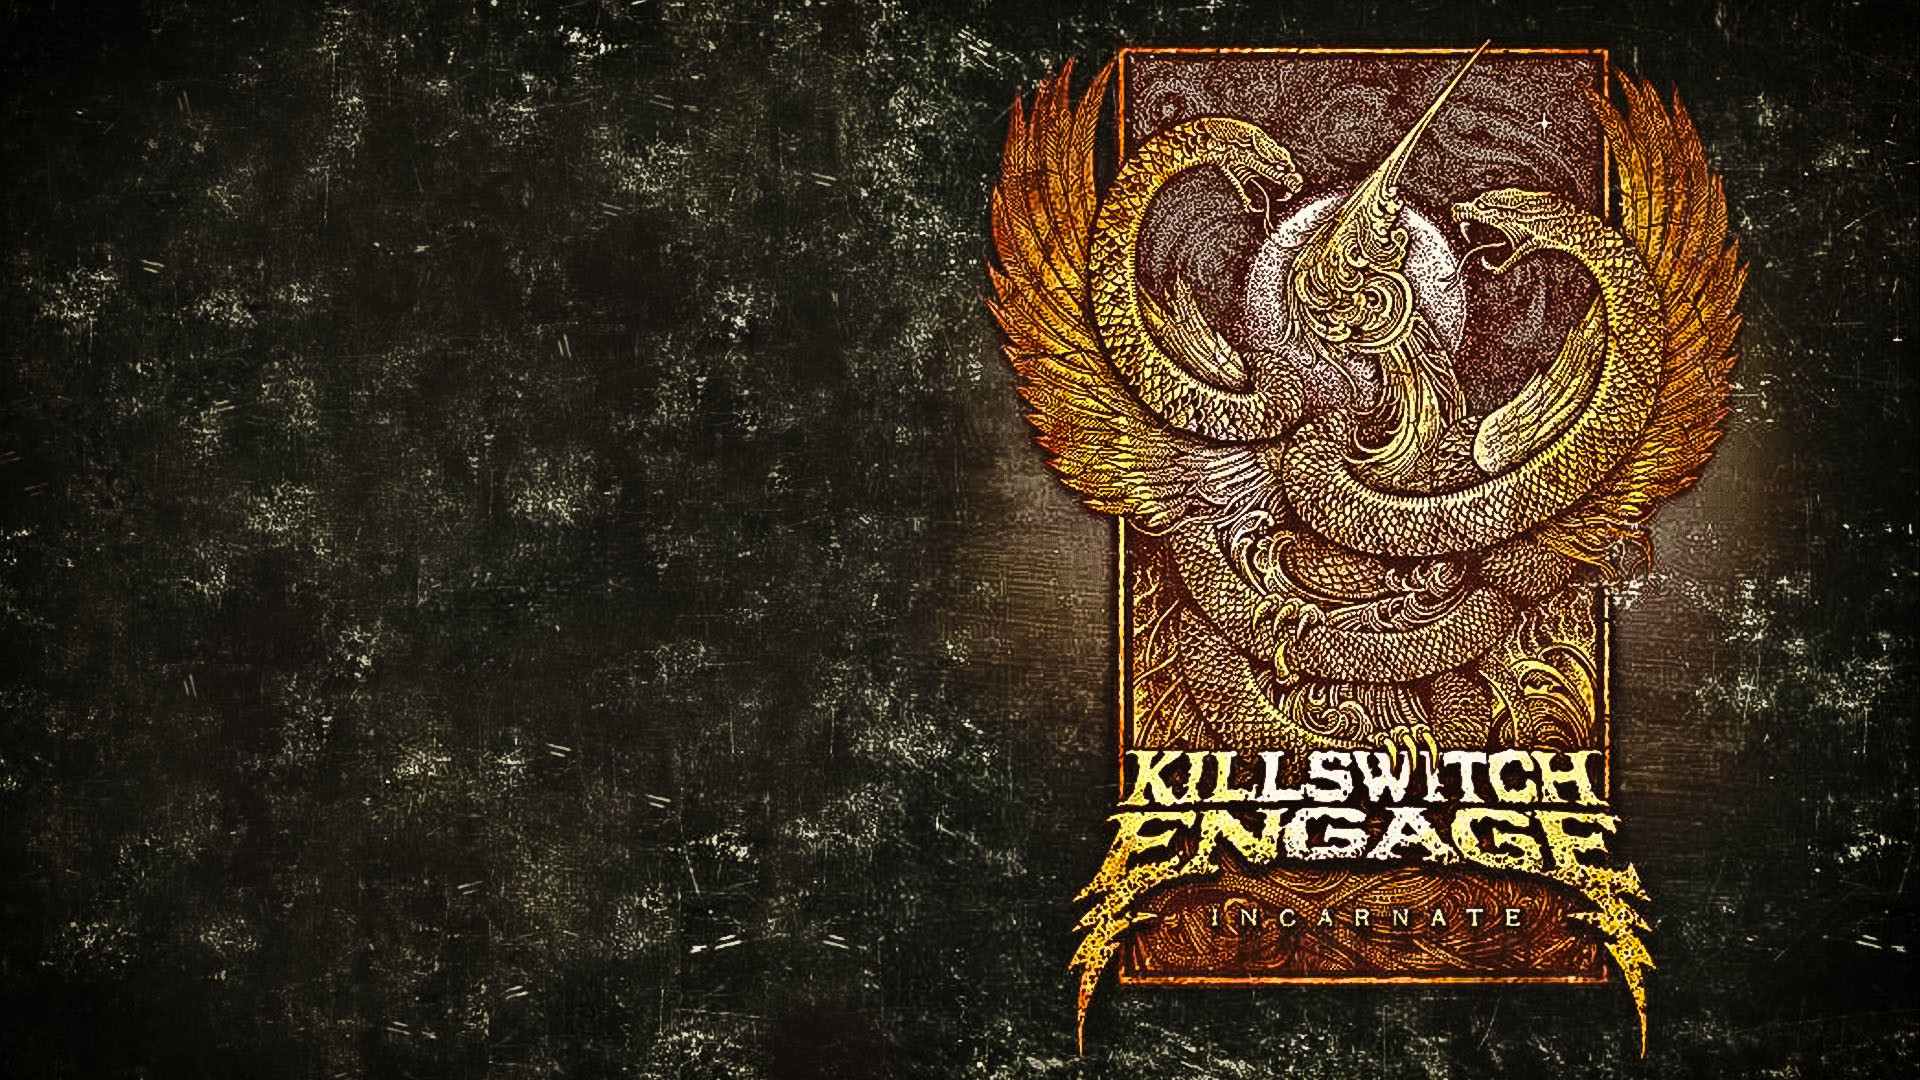 Killswitch Engage Incarnate based Wallpaper Hate by Design Strength of the  mind